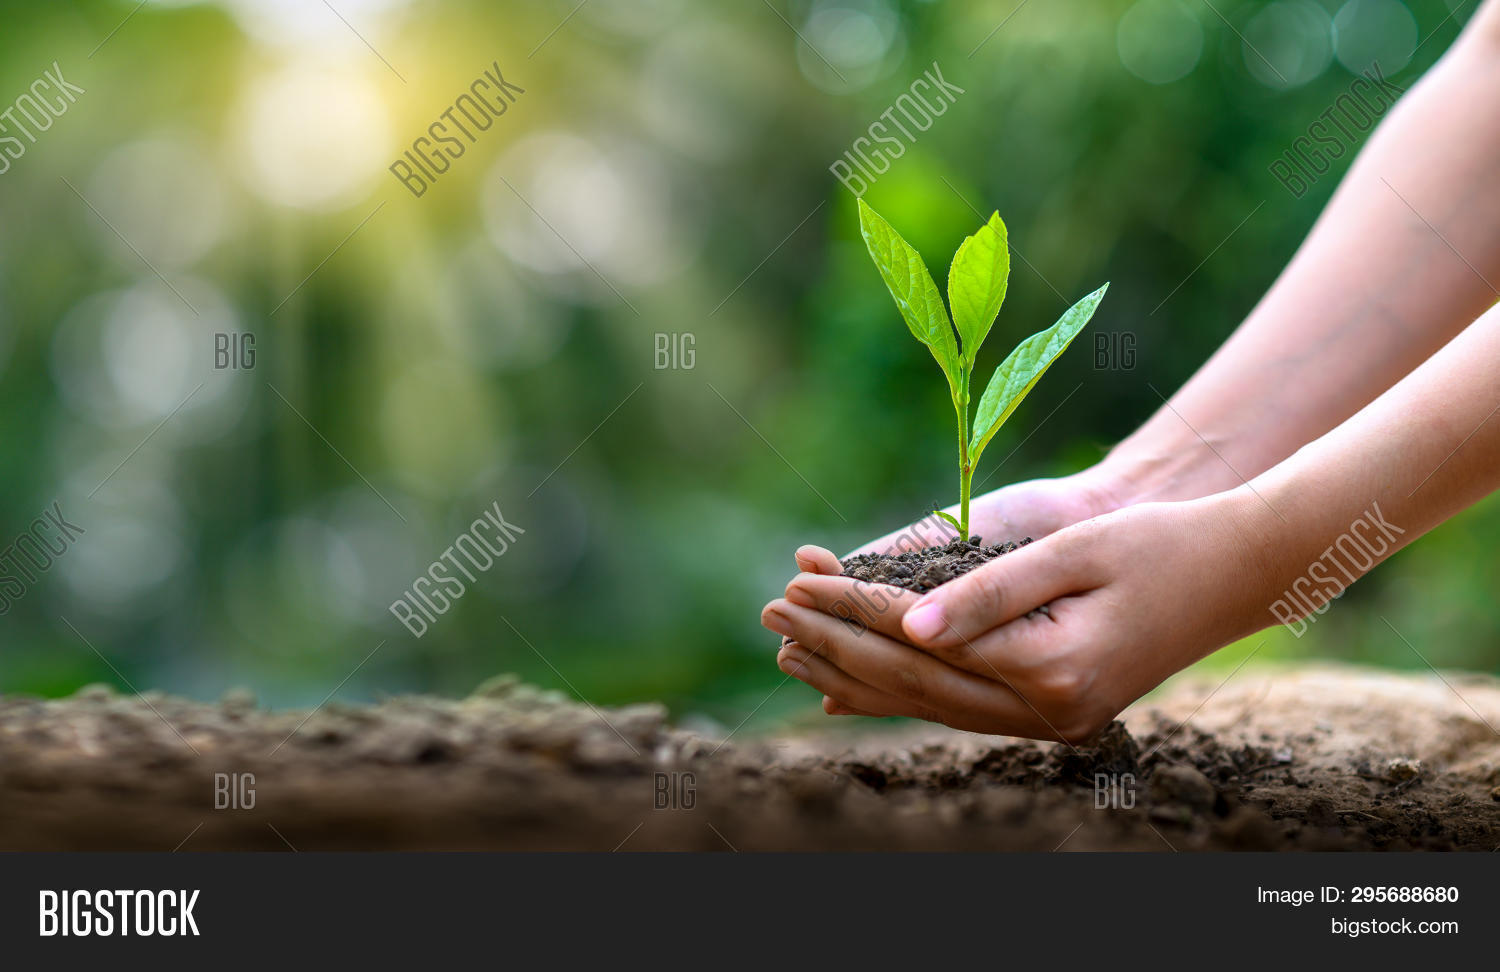 agriculture,background,bio,care,child,concept,conservation,day,design,development,earth,eco,ecology,environment,environmental,family,forest,friendly,global,globe,green,growth,hand,happy,holding,hope,illustration,leaf,life,man,natural,nature,new,people,planet,plant,poster,protect,protection,save,social,soil,spring,sprout,sustainable,symbol,tree,world,young